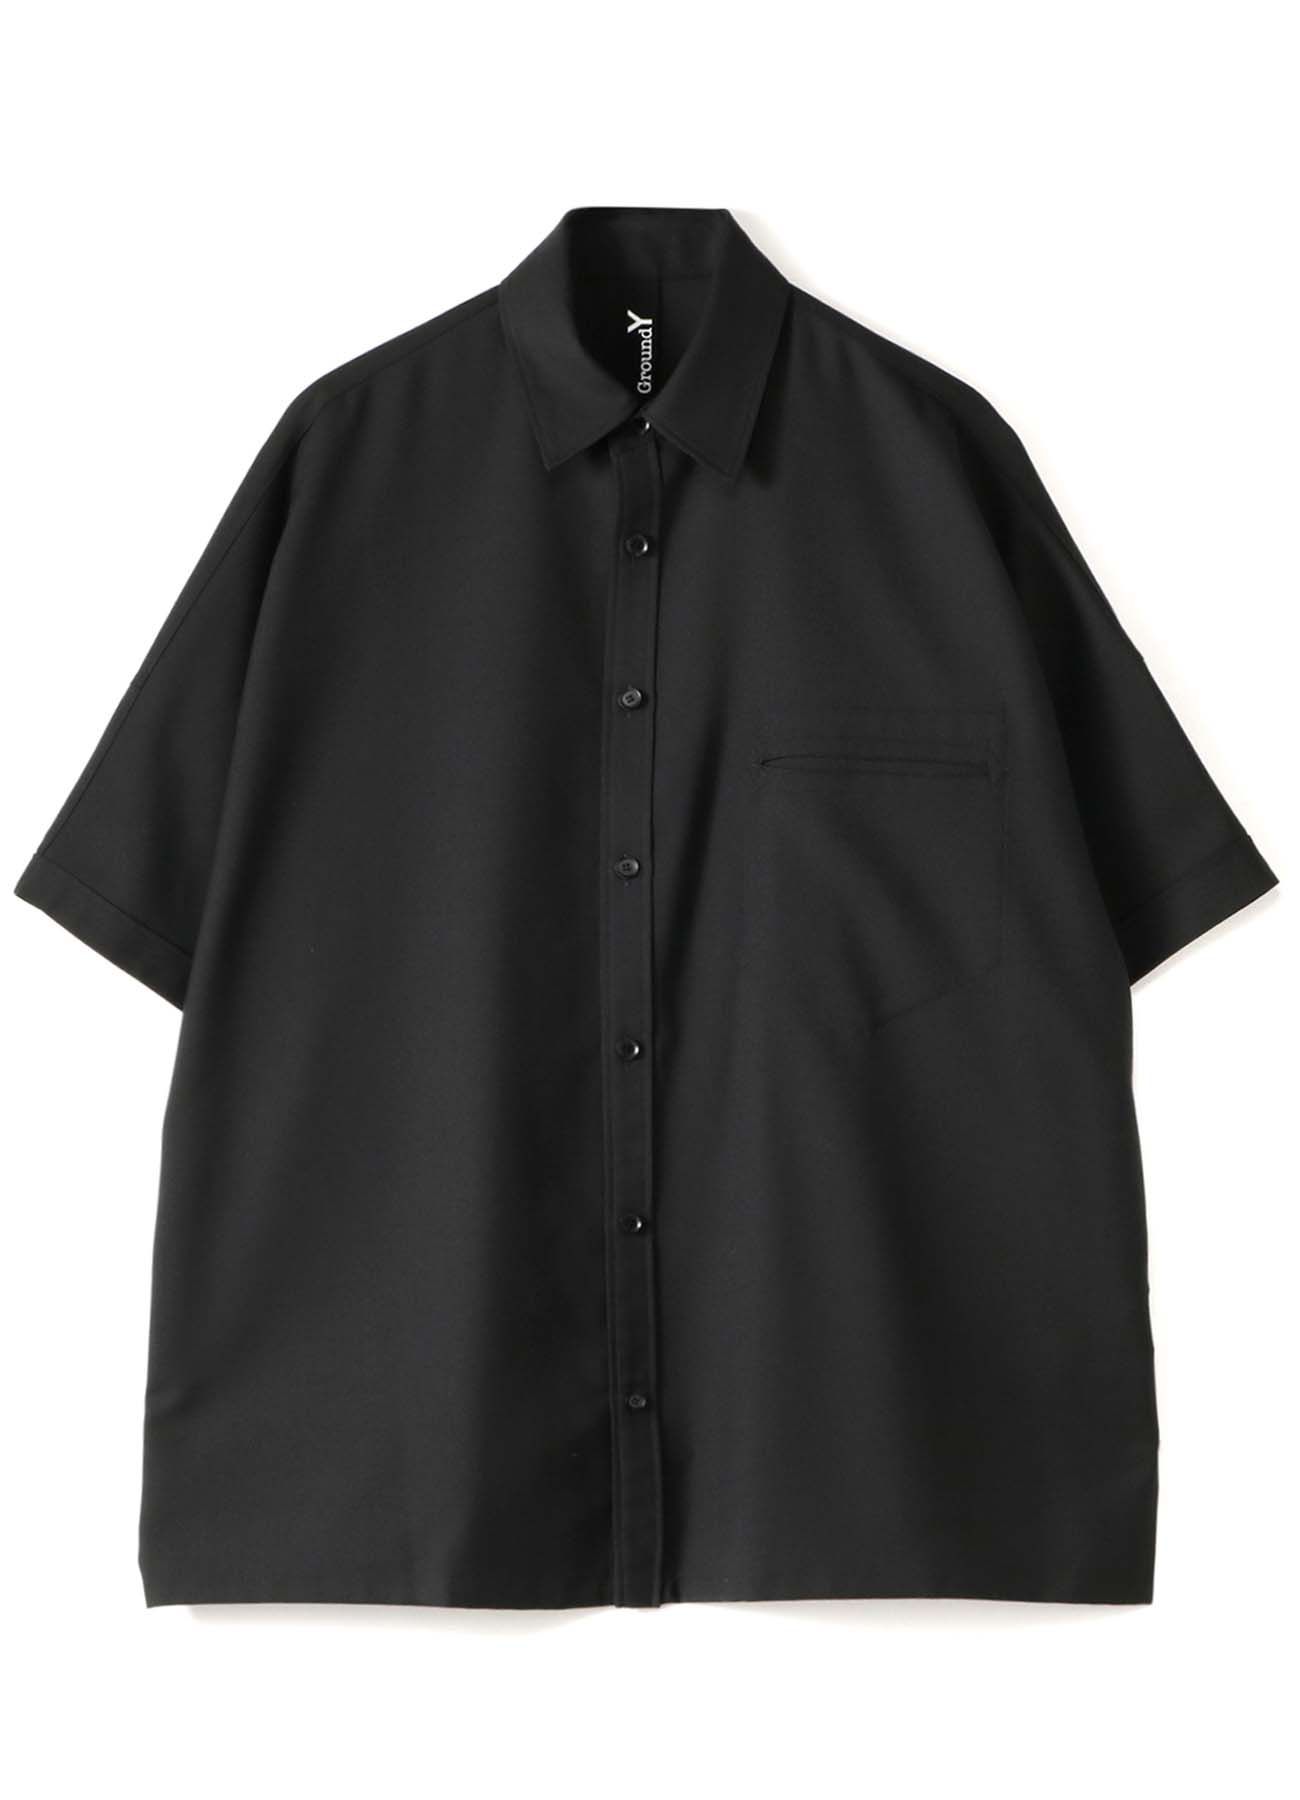 T/W Gabardine Dolman Short Sleeves Big Shirt